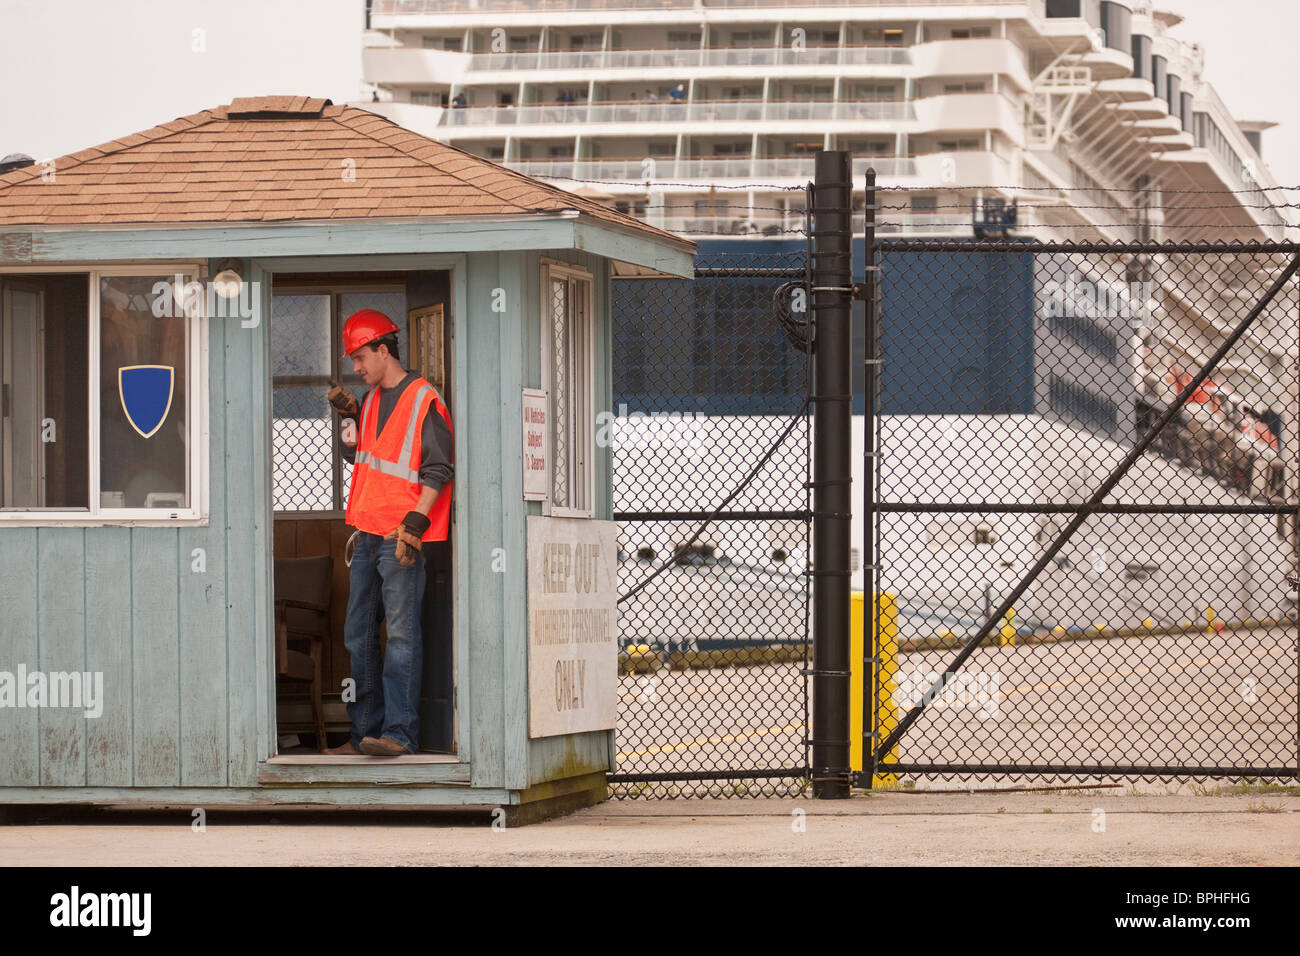 Engineer with a walkie-talkie at security point with a passenger ship in the background - Stock Image